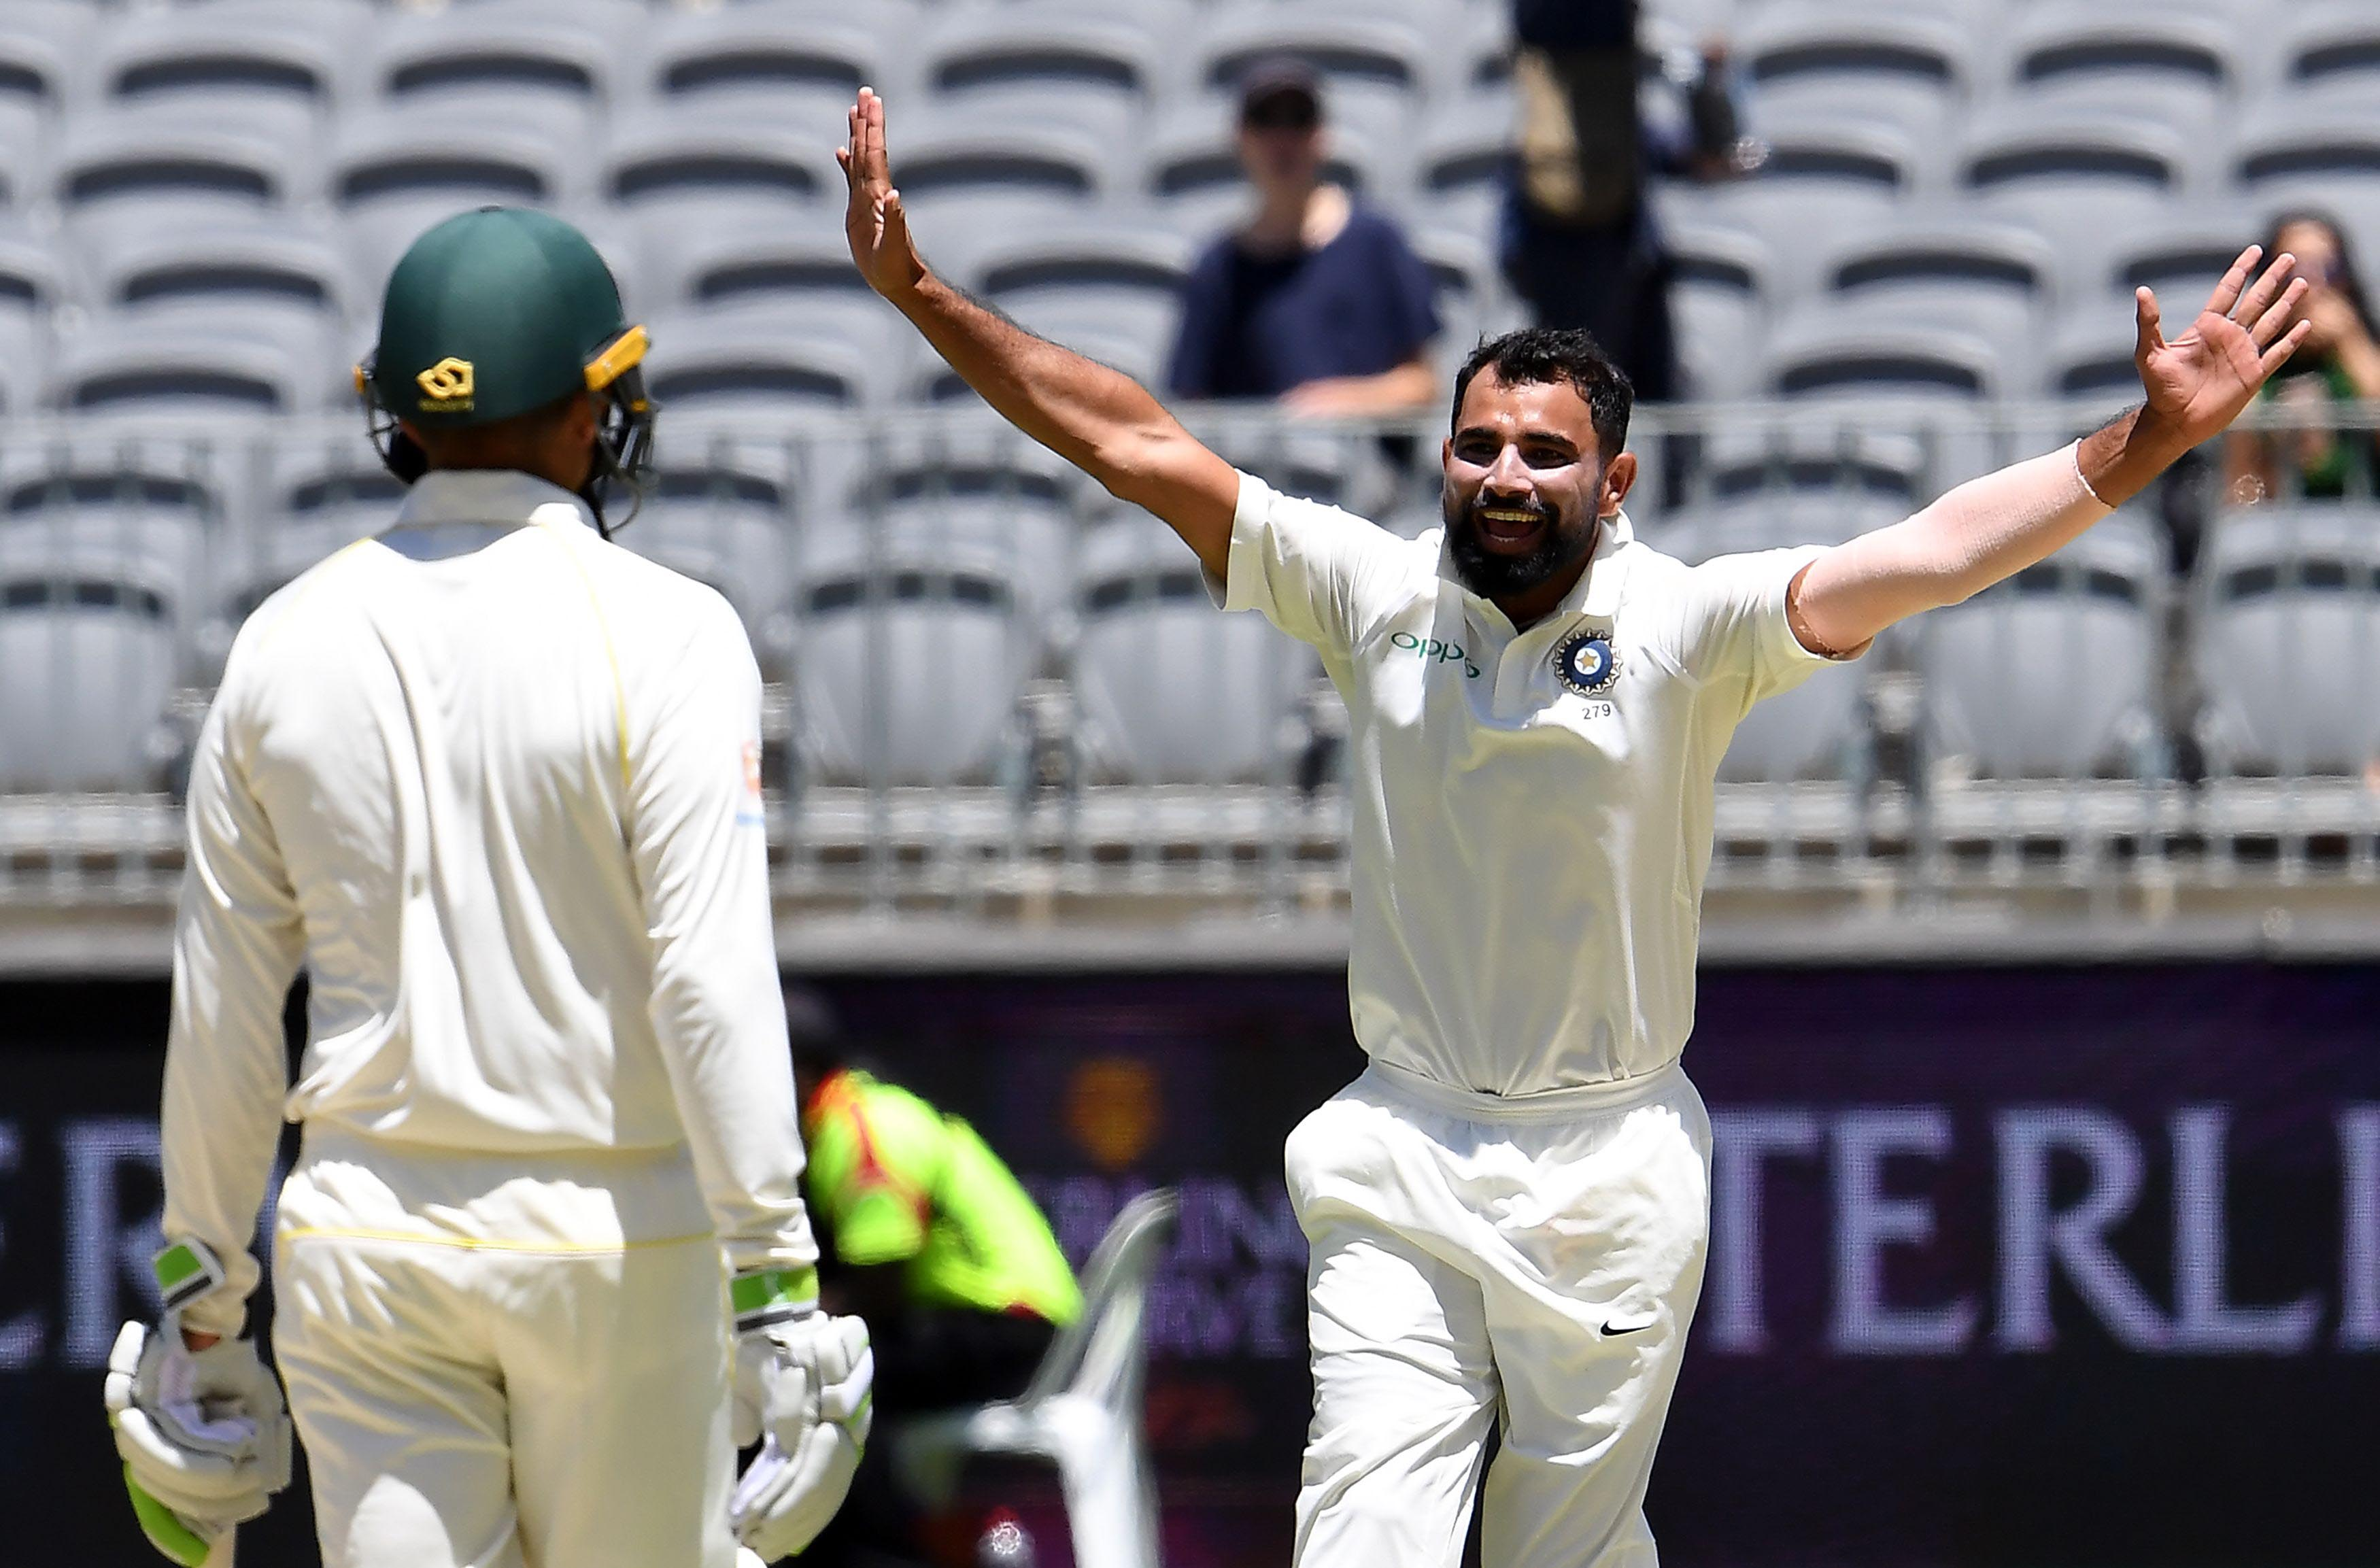 India vs Australia 2nd Test: Mohammed Shami takes 6 wickets, breaks Anil Kumble's 12 year old record